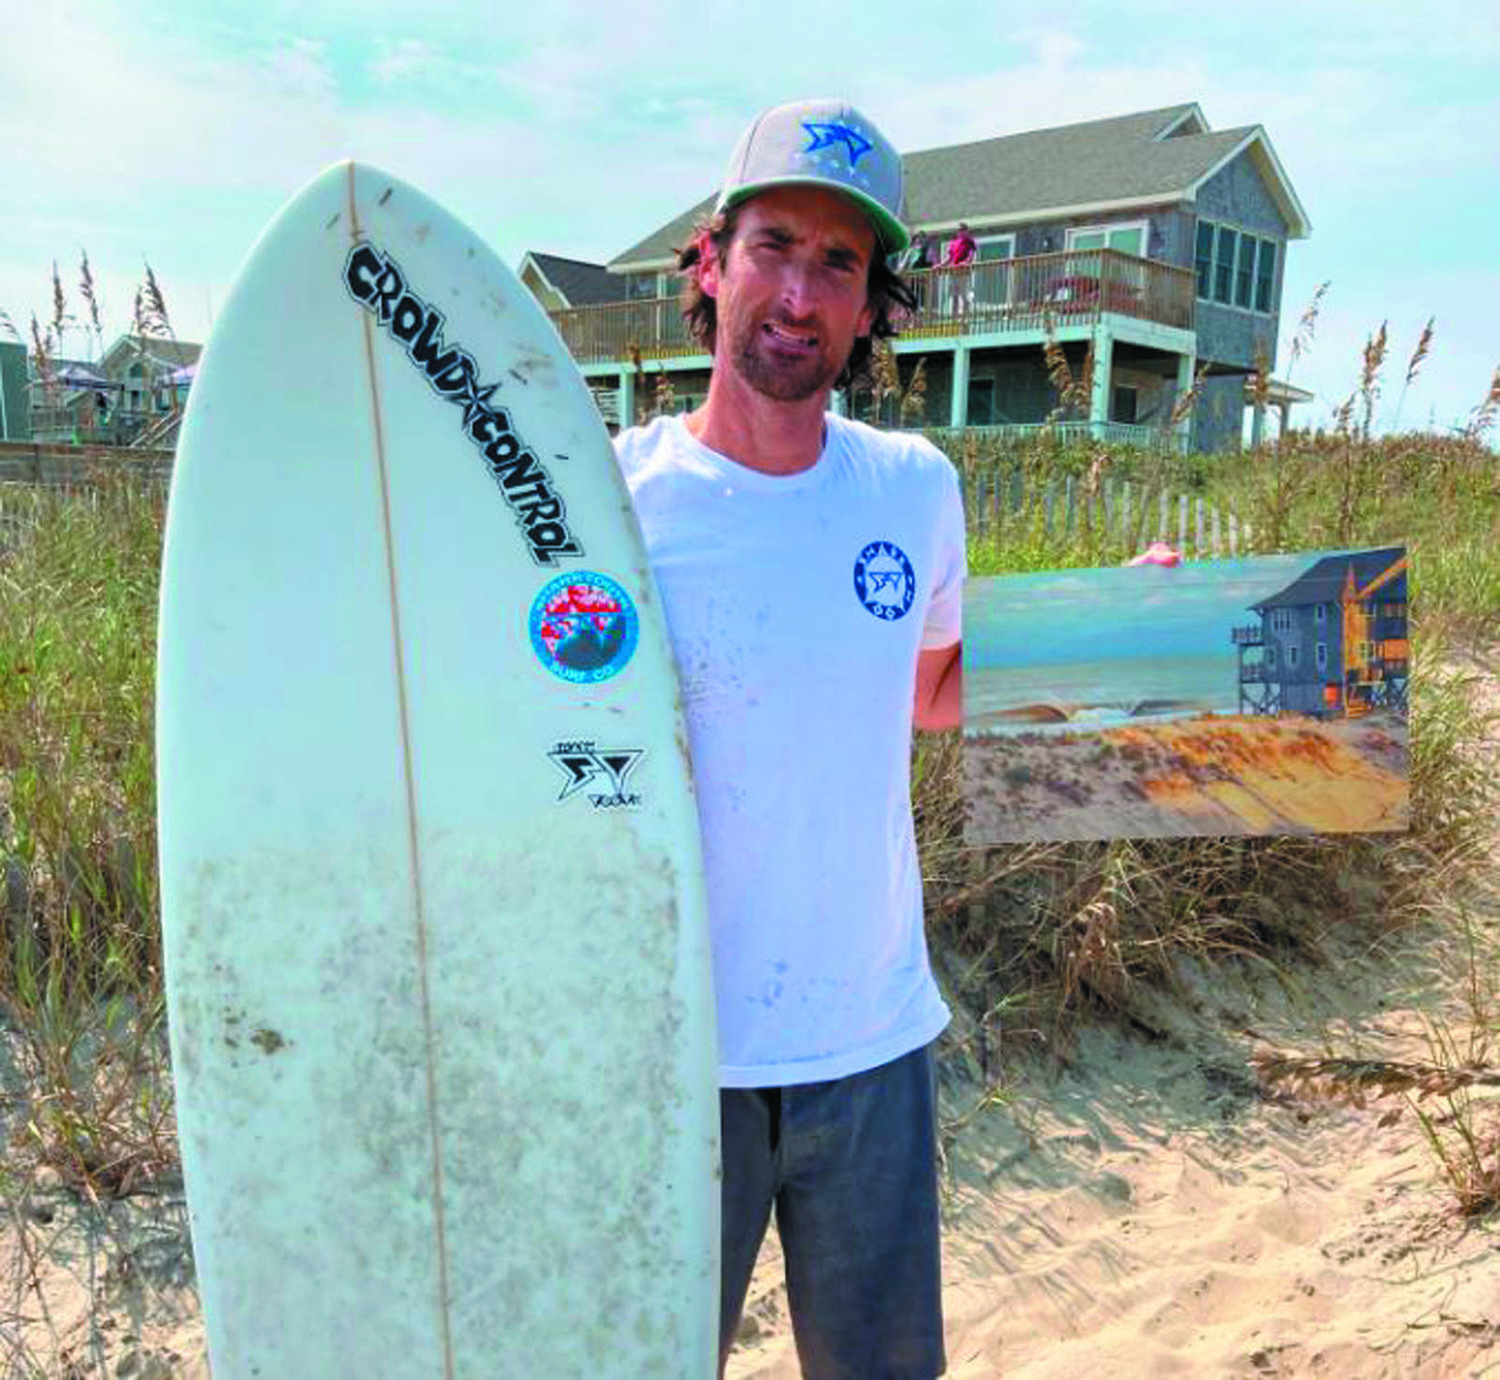 STRONG FINISH: Despite the ongoing COVID-19 pandemic, the surf was up this past year and local Christopher Herbert enjoyed his best season yet,reaching the finals in multiple events at the Eastern Surfing Association's Eastern Championships in North Carolina. Herbert was excited with his performance and has his sights set on 2021.